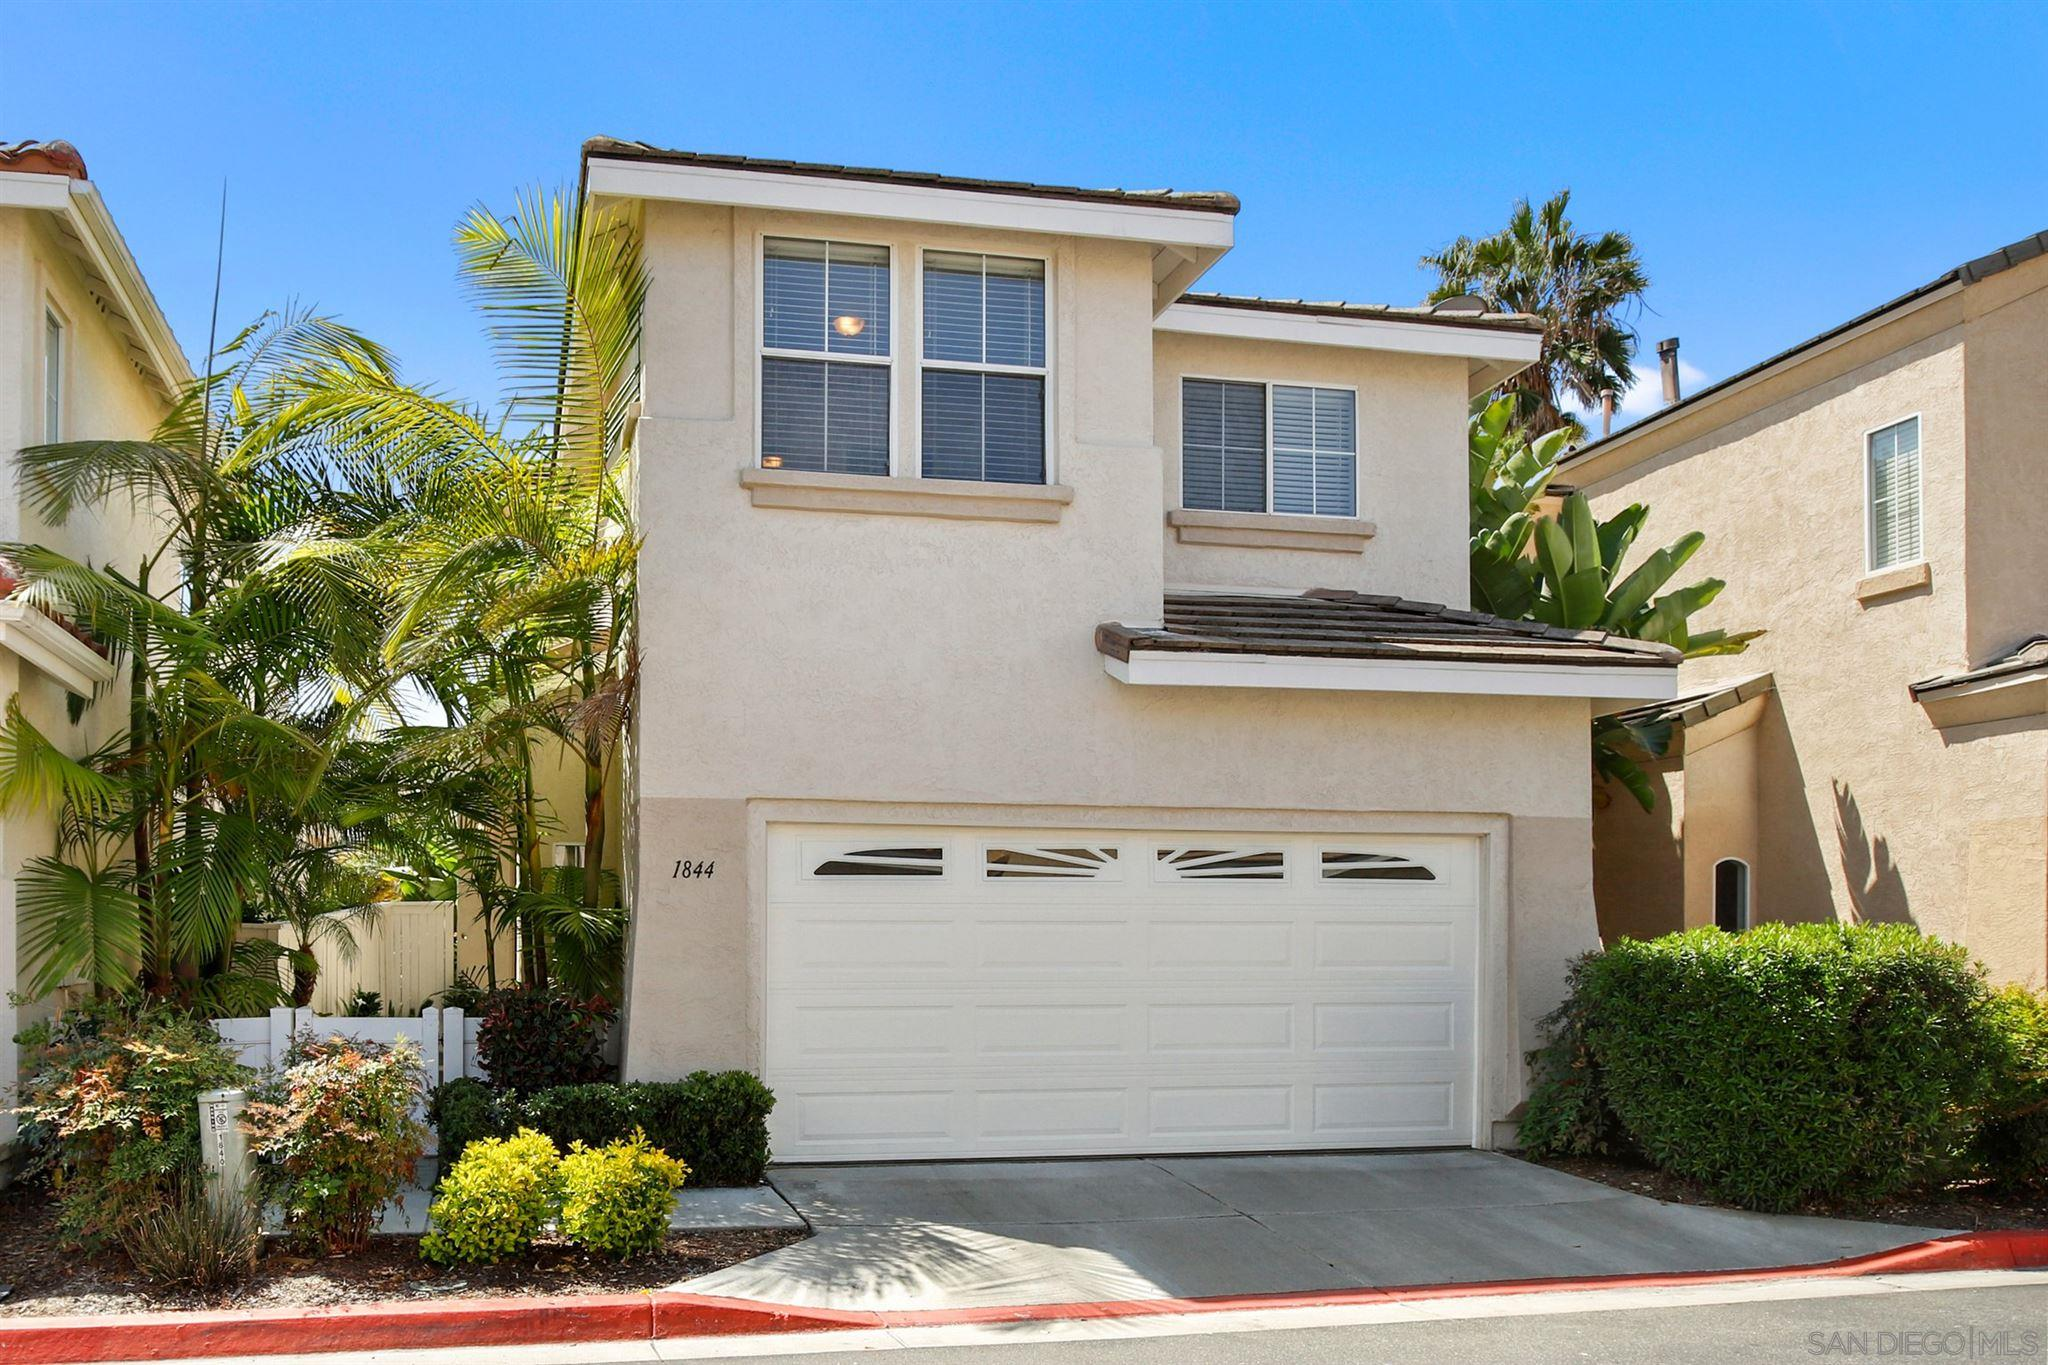 1844 Saint Lucia Way, Vista CA 92081